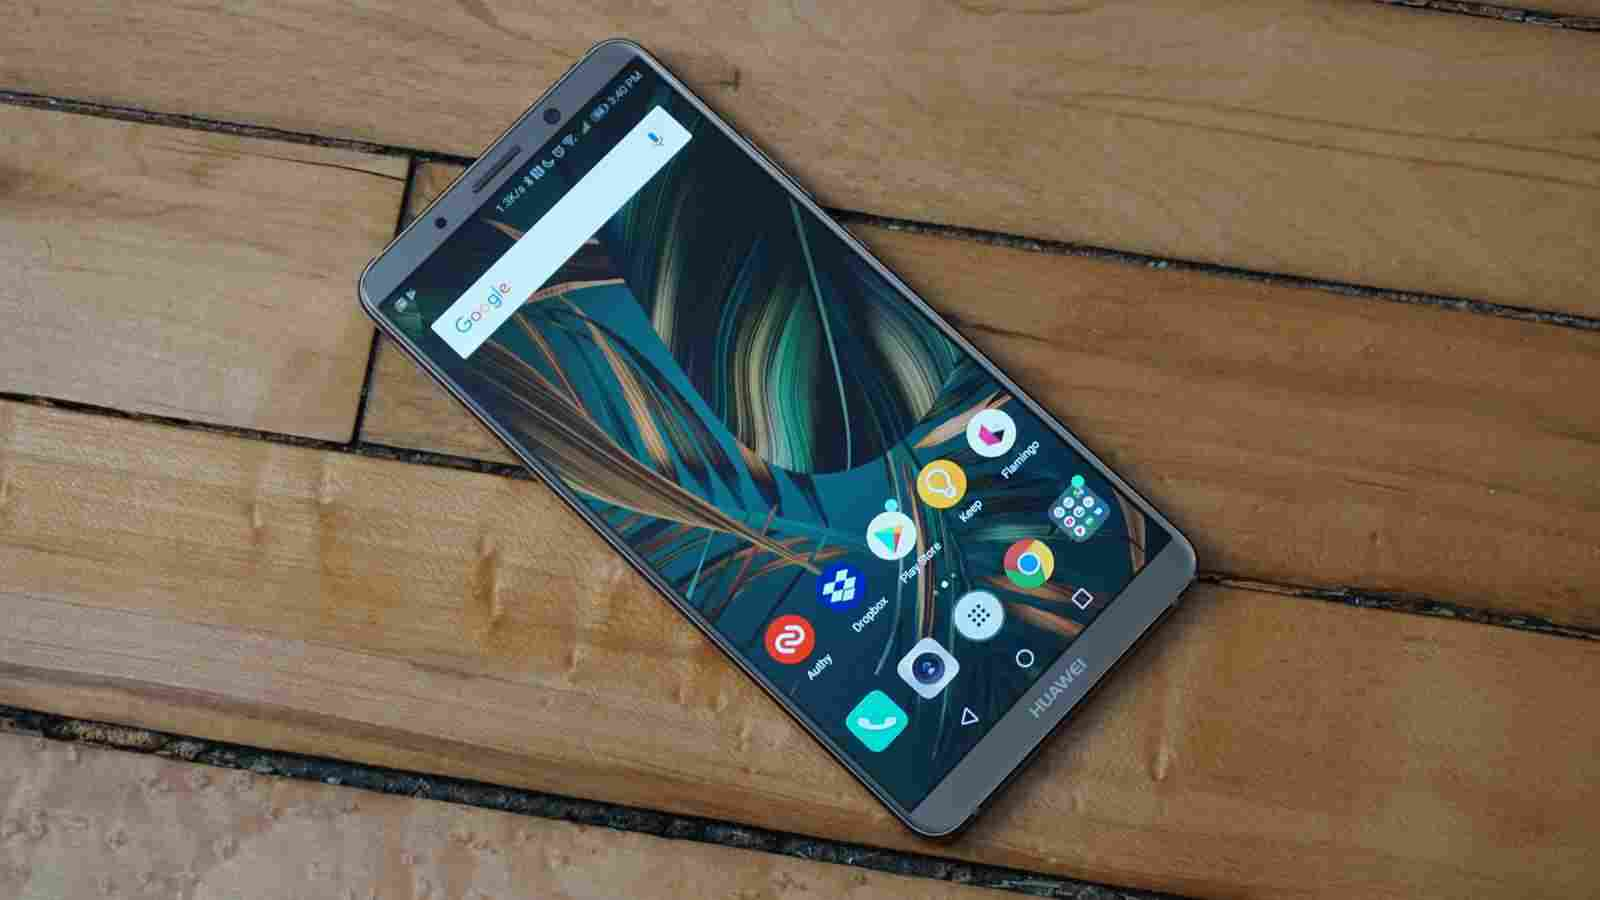 Best Android Gaming Phones For 2018 - Huawei Mate 10 Pro